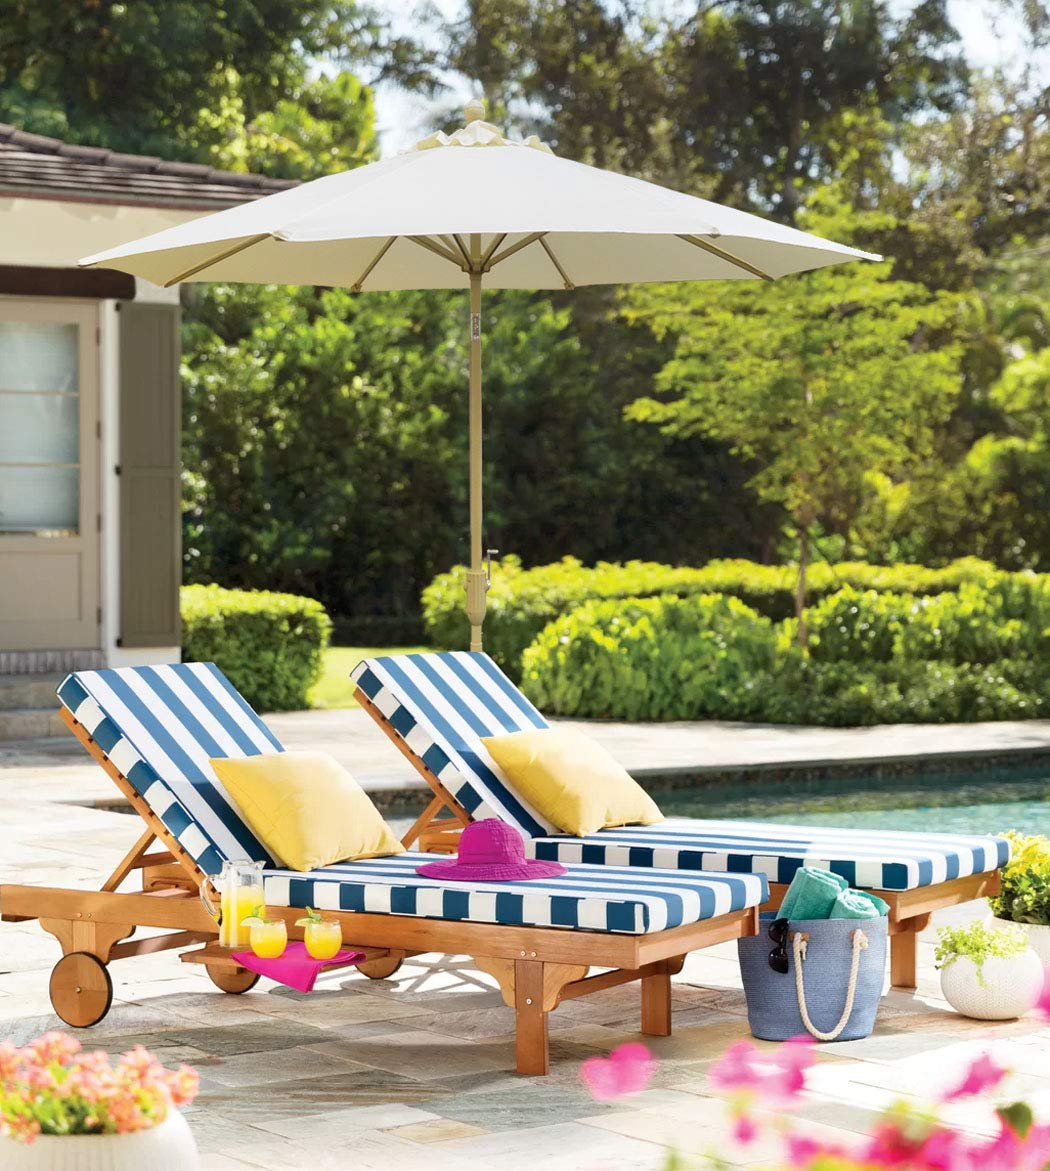 Tangkula 4 pcs Wicker Furniture Set Outdoor Patio Furniture Rattan Wicker Sofas Garden Lawn Poolside Cushioned Seat Conversation Set with Removable Cushions Coffee Table Patio Furniture Brown 003